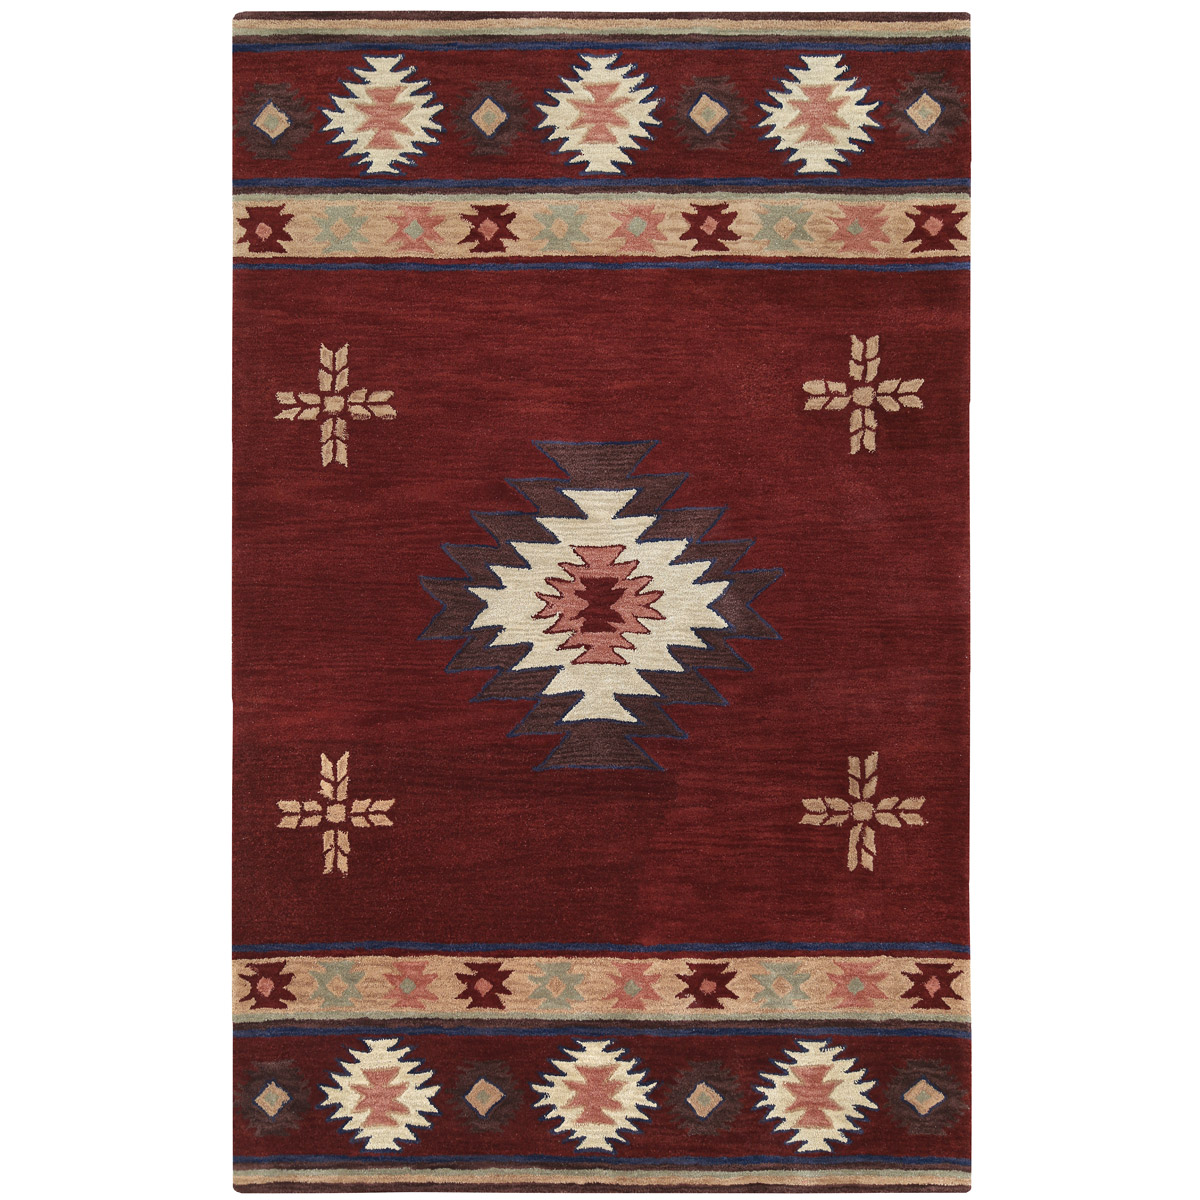 Southwest Burgundy Rug - 2 x 8